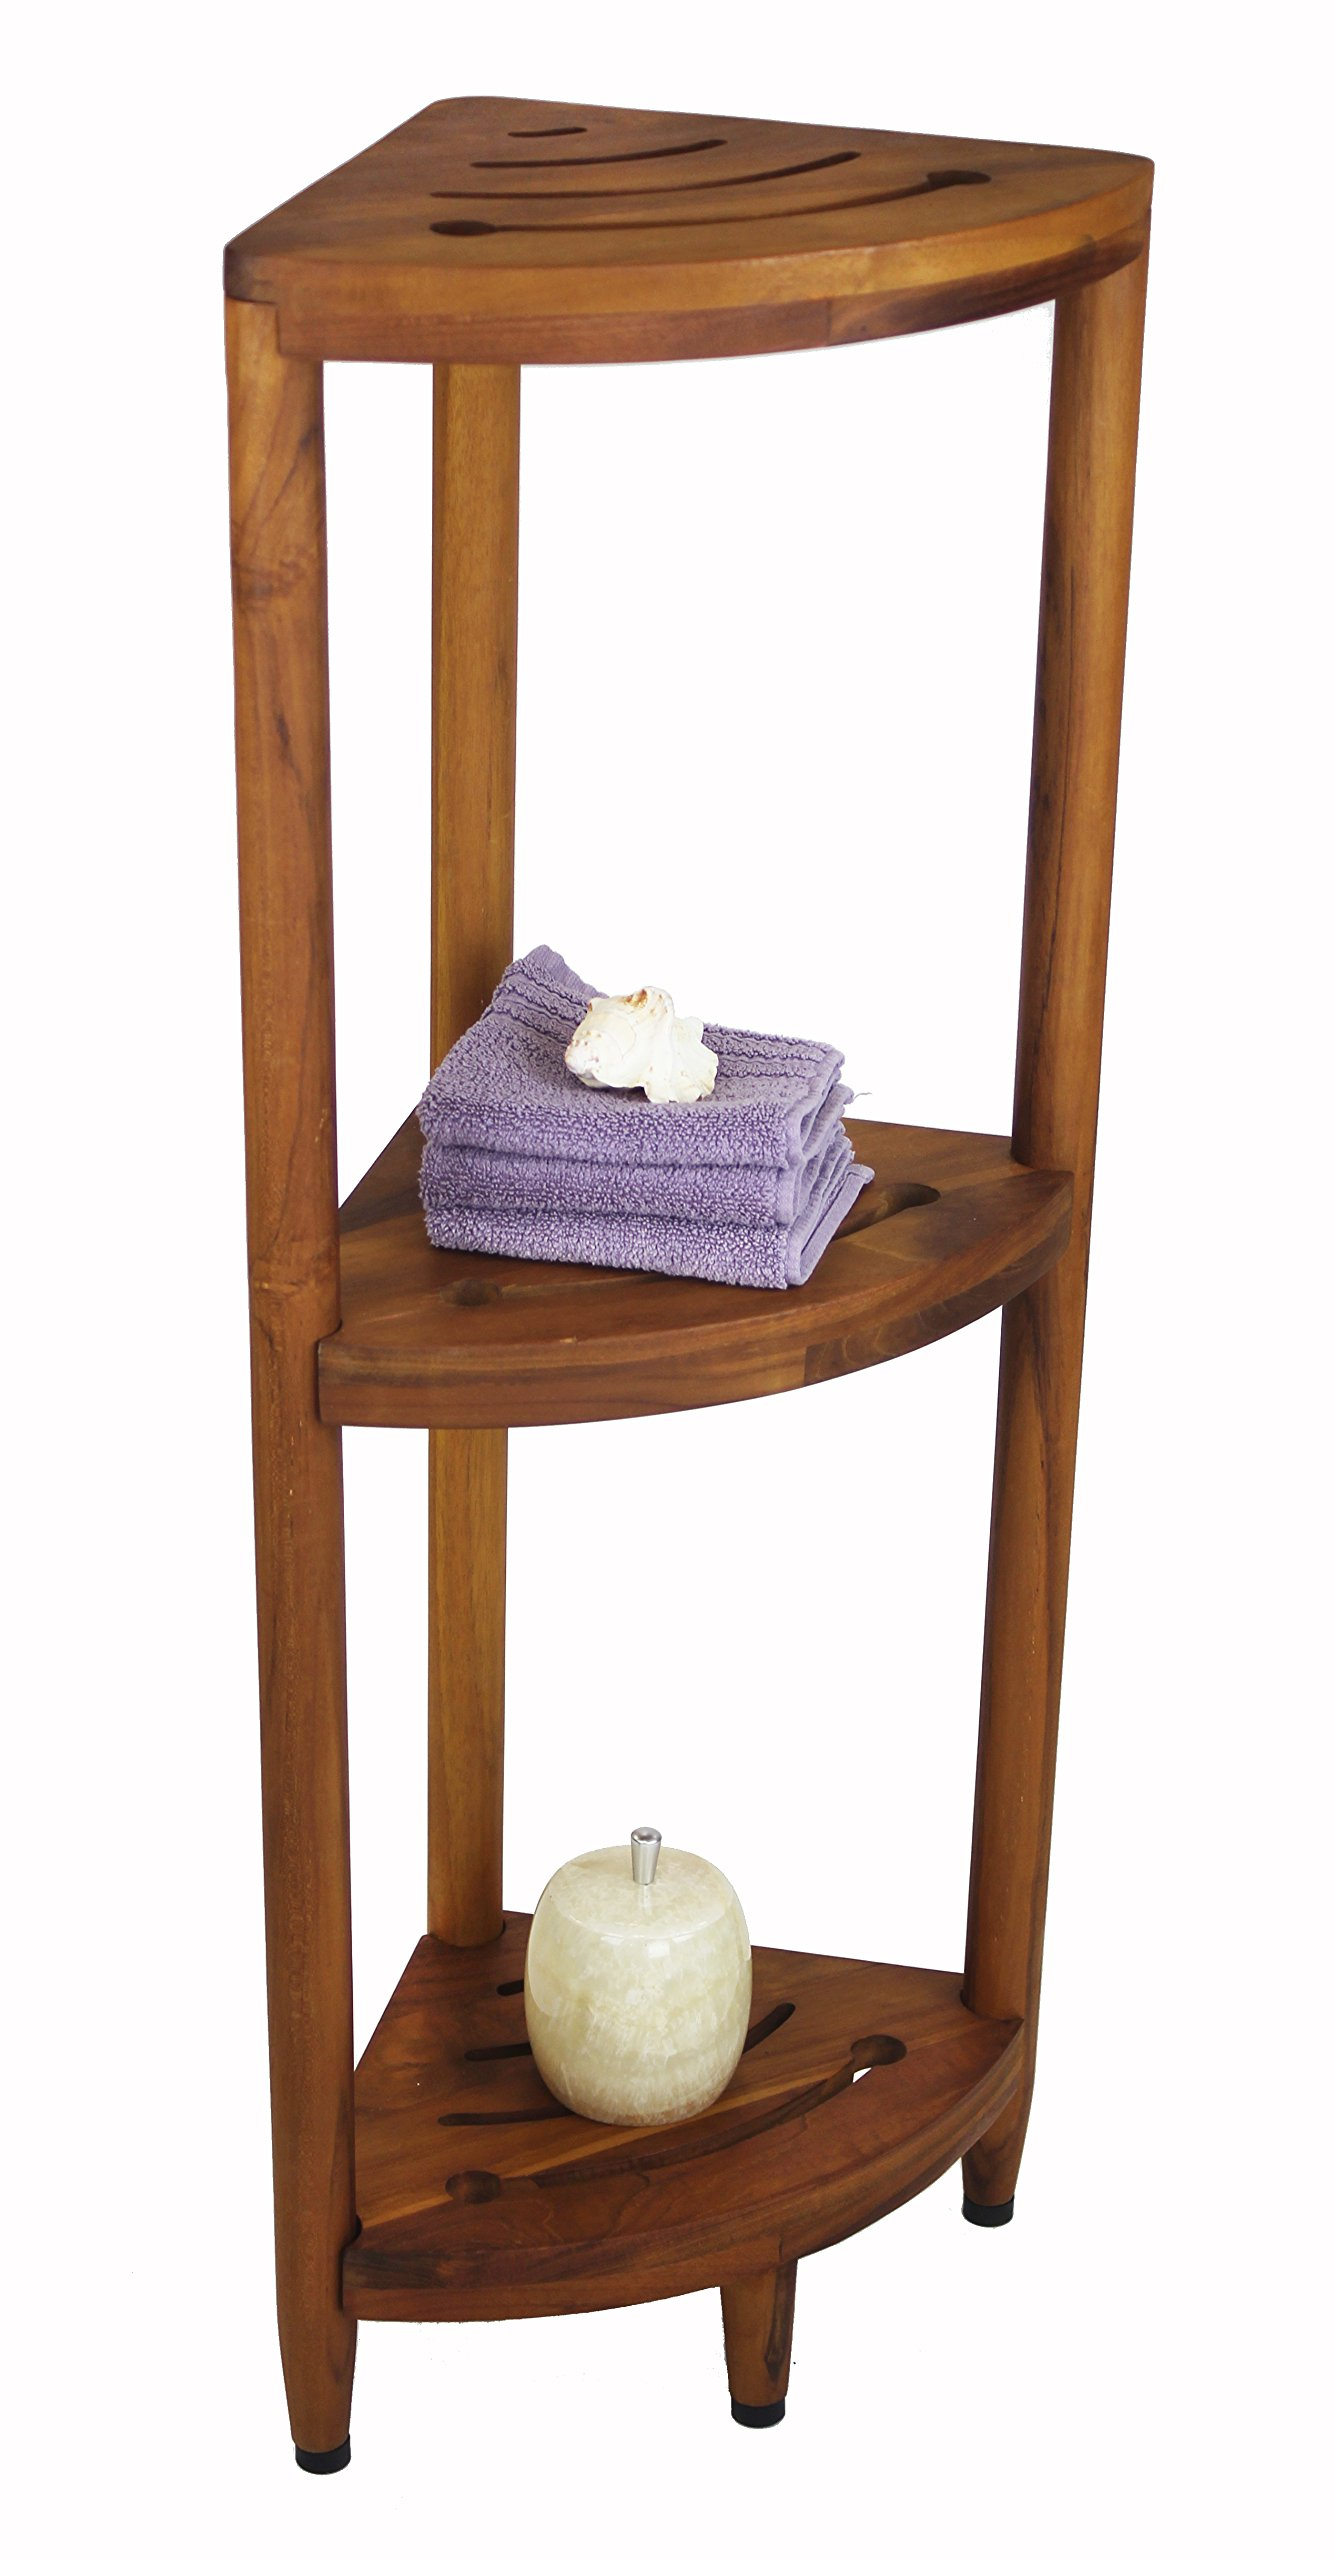 Amazon Com The Original Spa 30 Quot Teak Shower Bench With Shelf Home Improvement